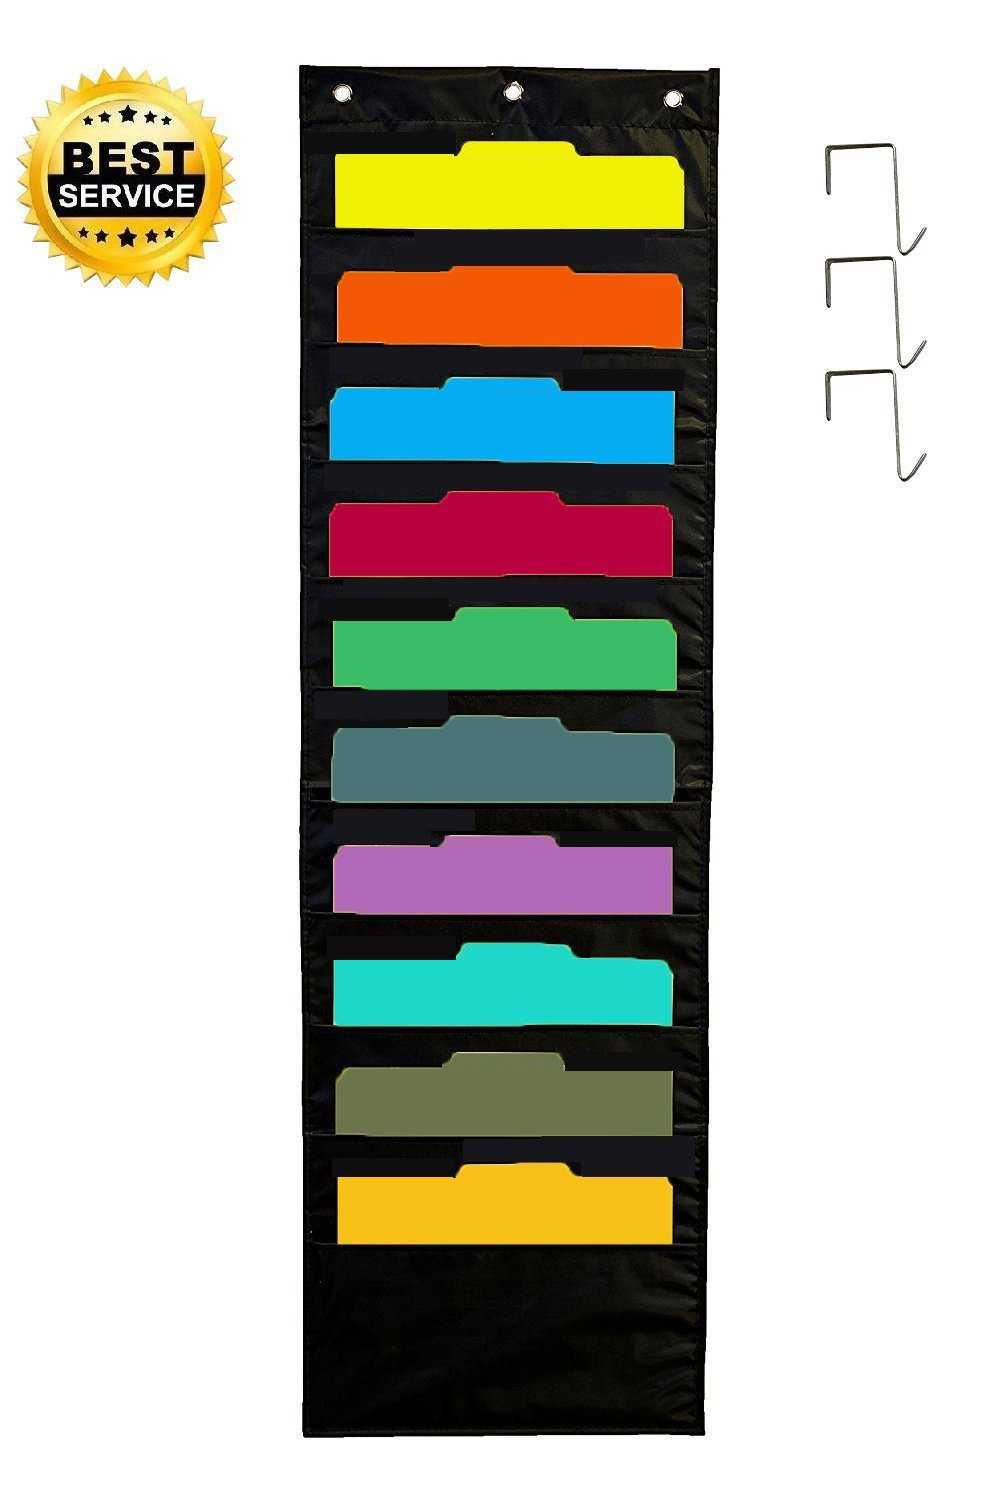 GGUO Wall Storage Pocket Chart with 10 Pockets & 3 Hangers Cascading Wall Charts, Best Wall Storage Organizers for Home Organization, School Pocket Chart, Office Bill Filing, Homework and More(Black)